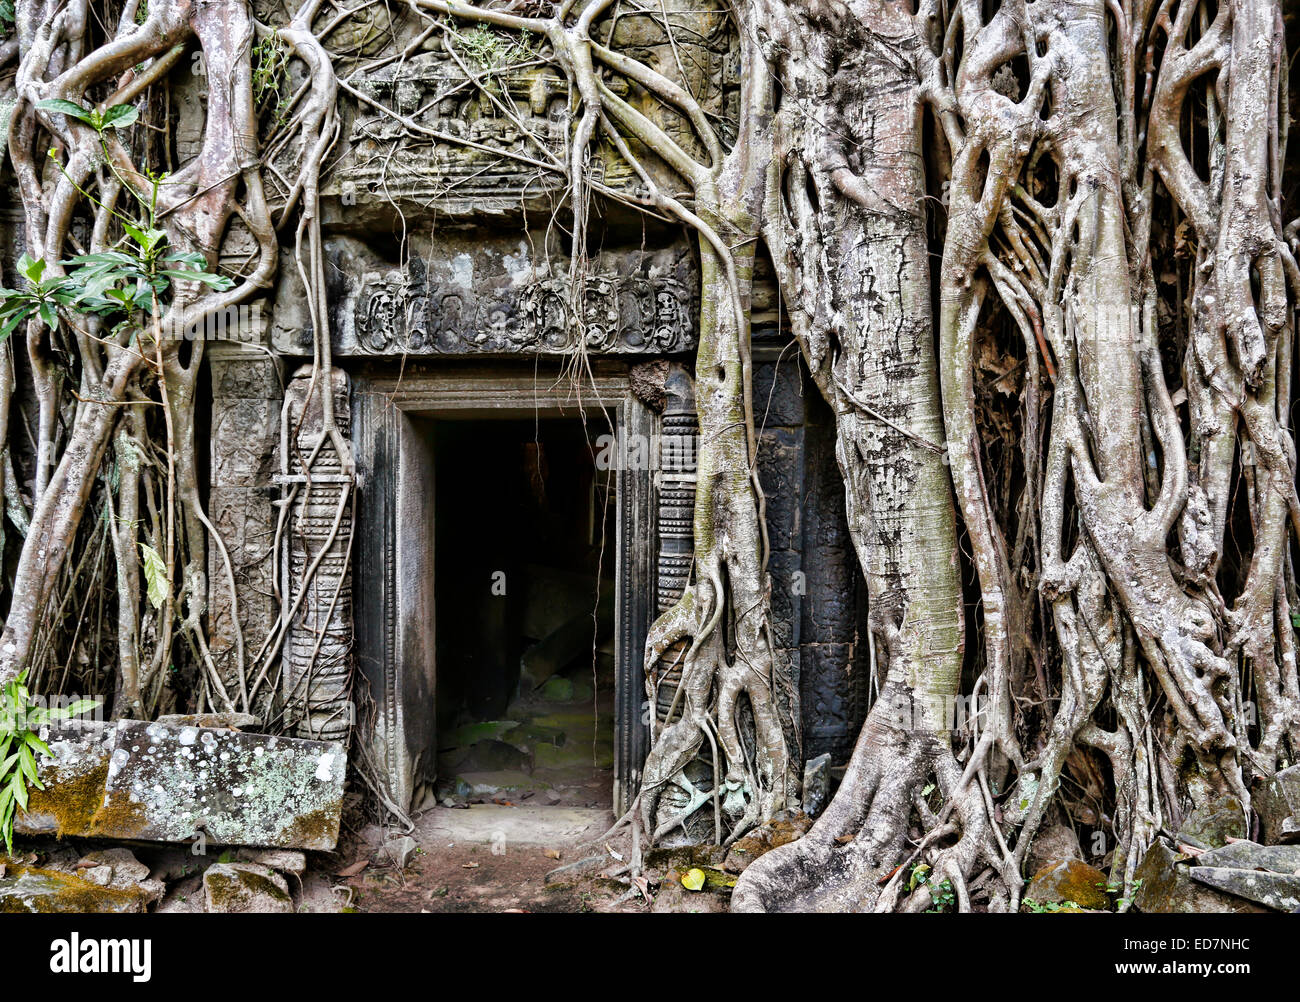 Doorway At Ta Prohm Temple Overgrown With Strangler Fig Tree Roots ...